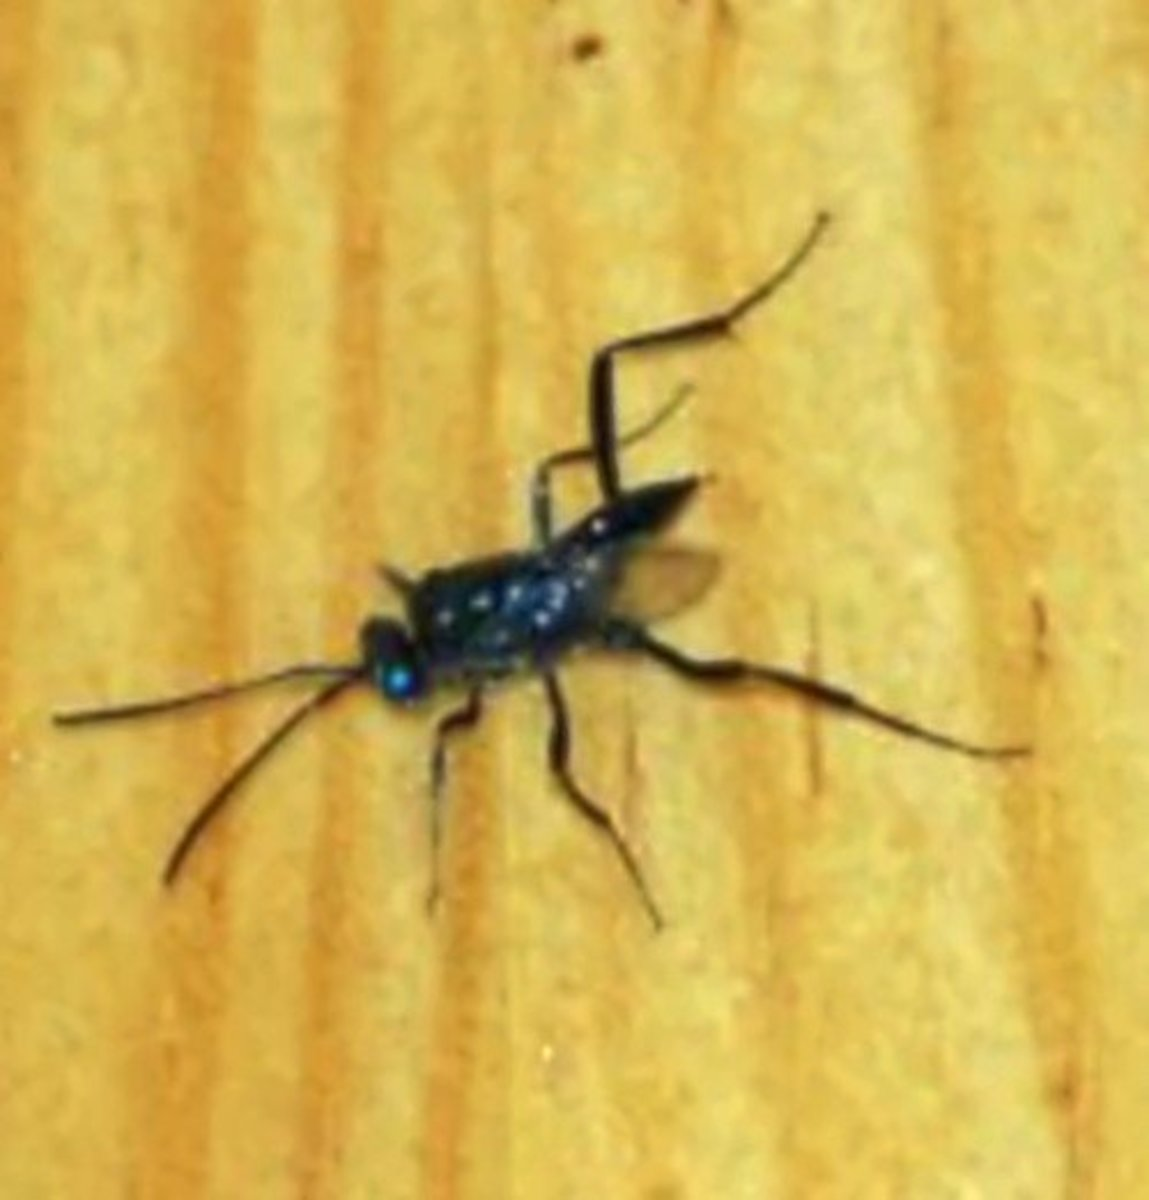 Ensign Wasps Don't Sting People but Will Kill Cockroaches